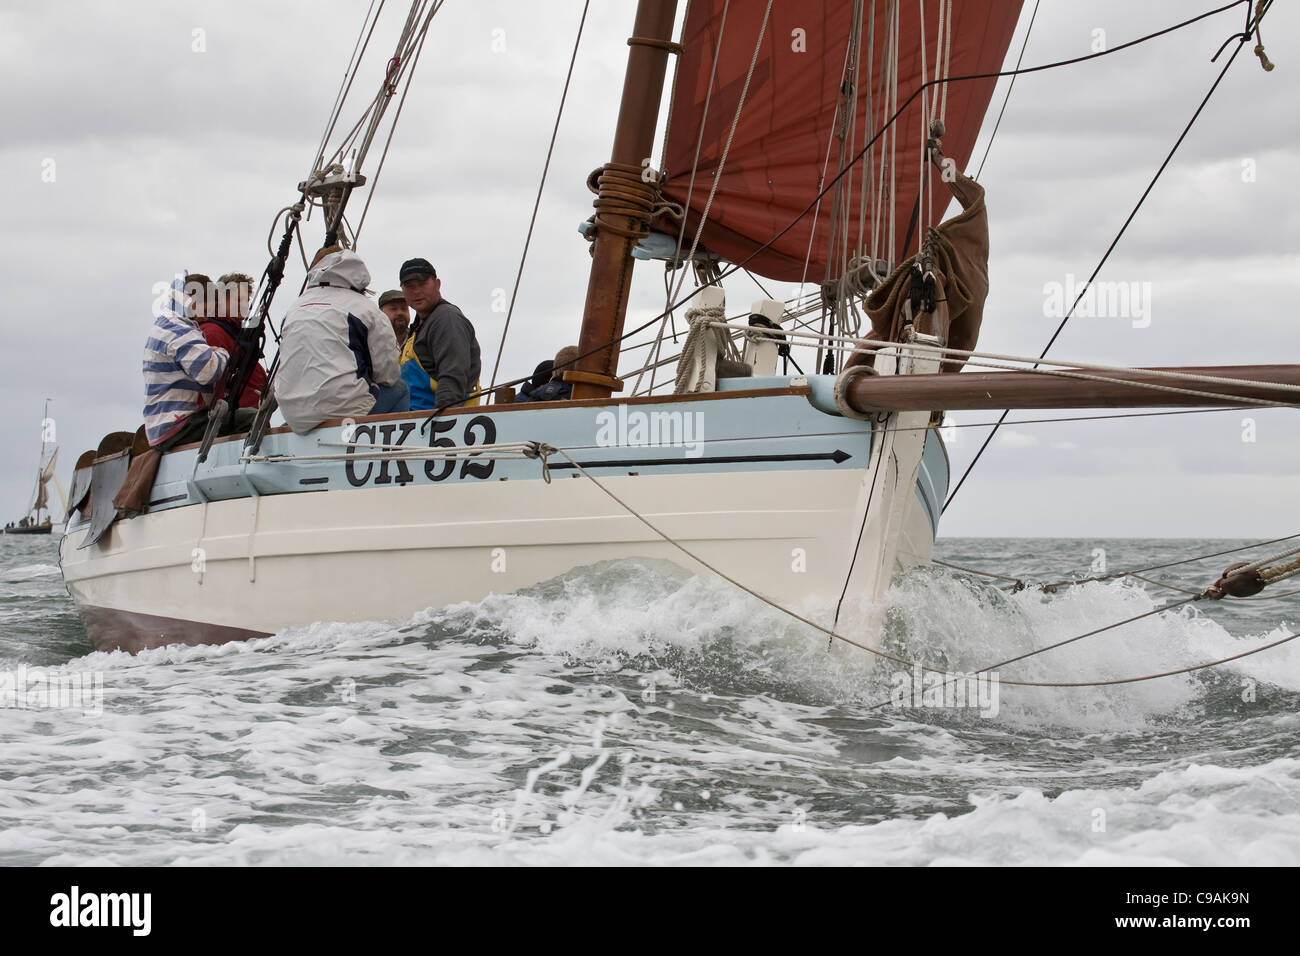 Oyster smack under sail off West Mersea. - Stock Image